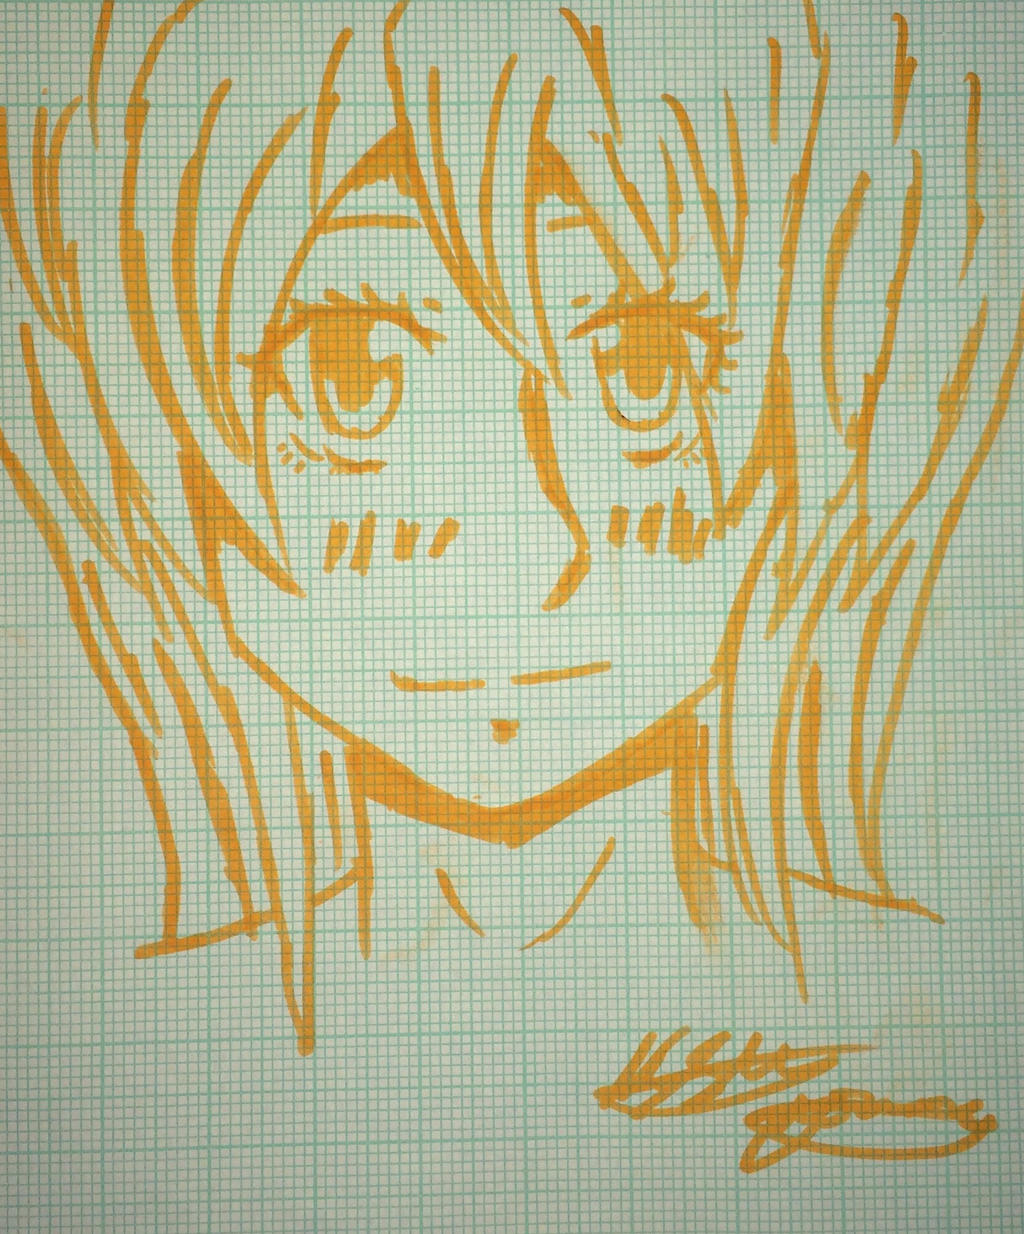 Free hand drawing of a girl by epicbubble7